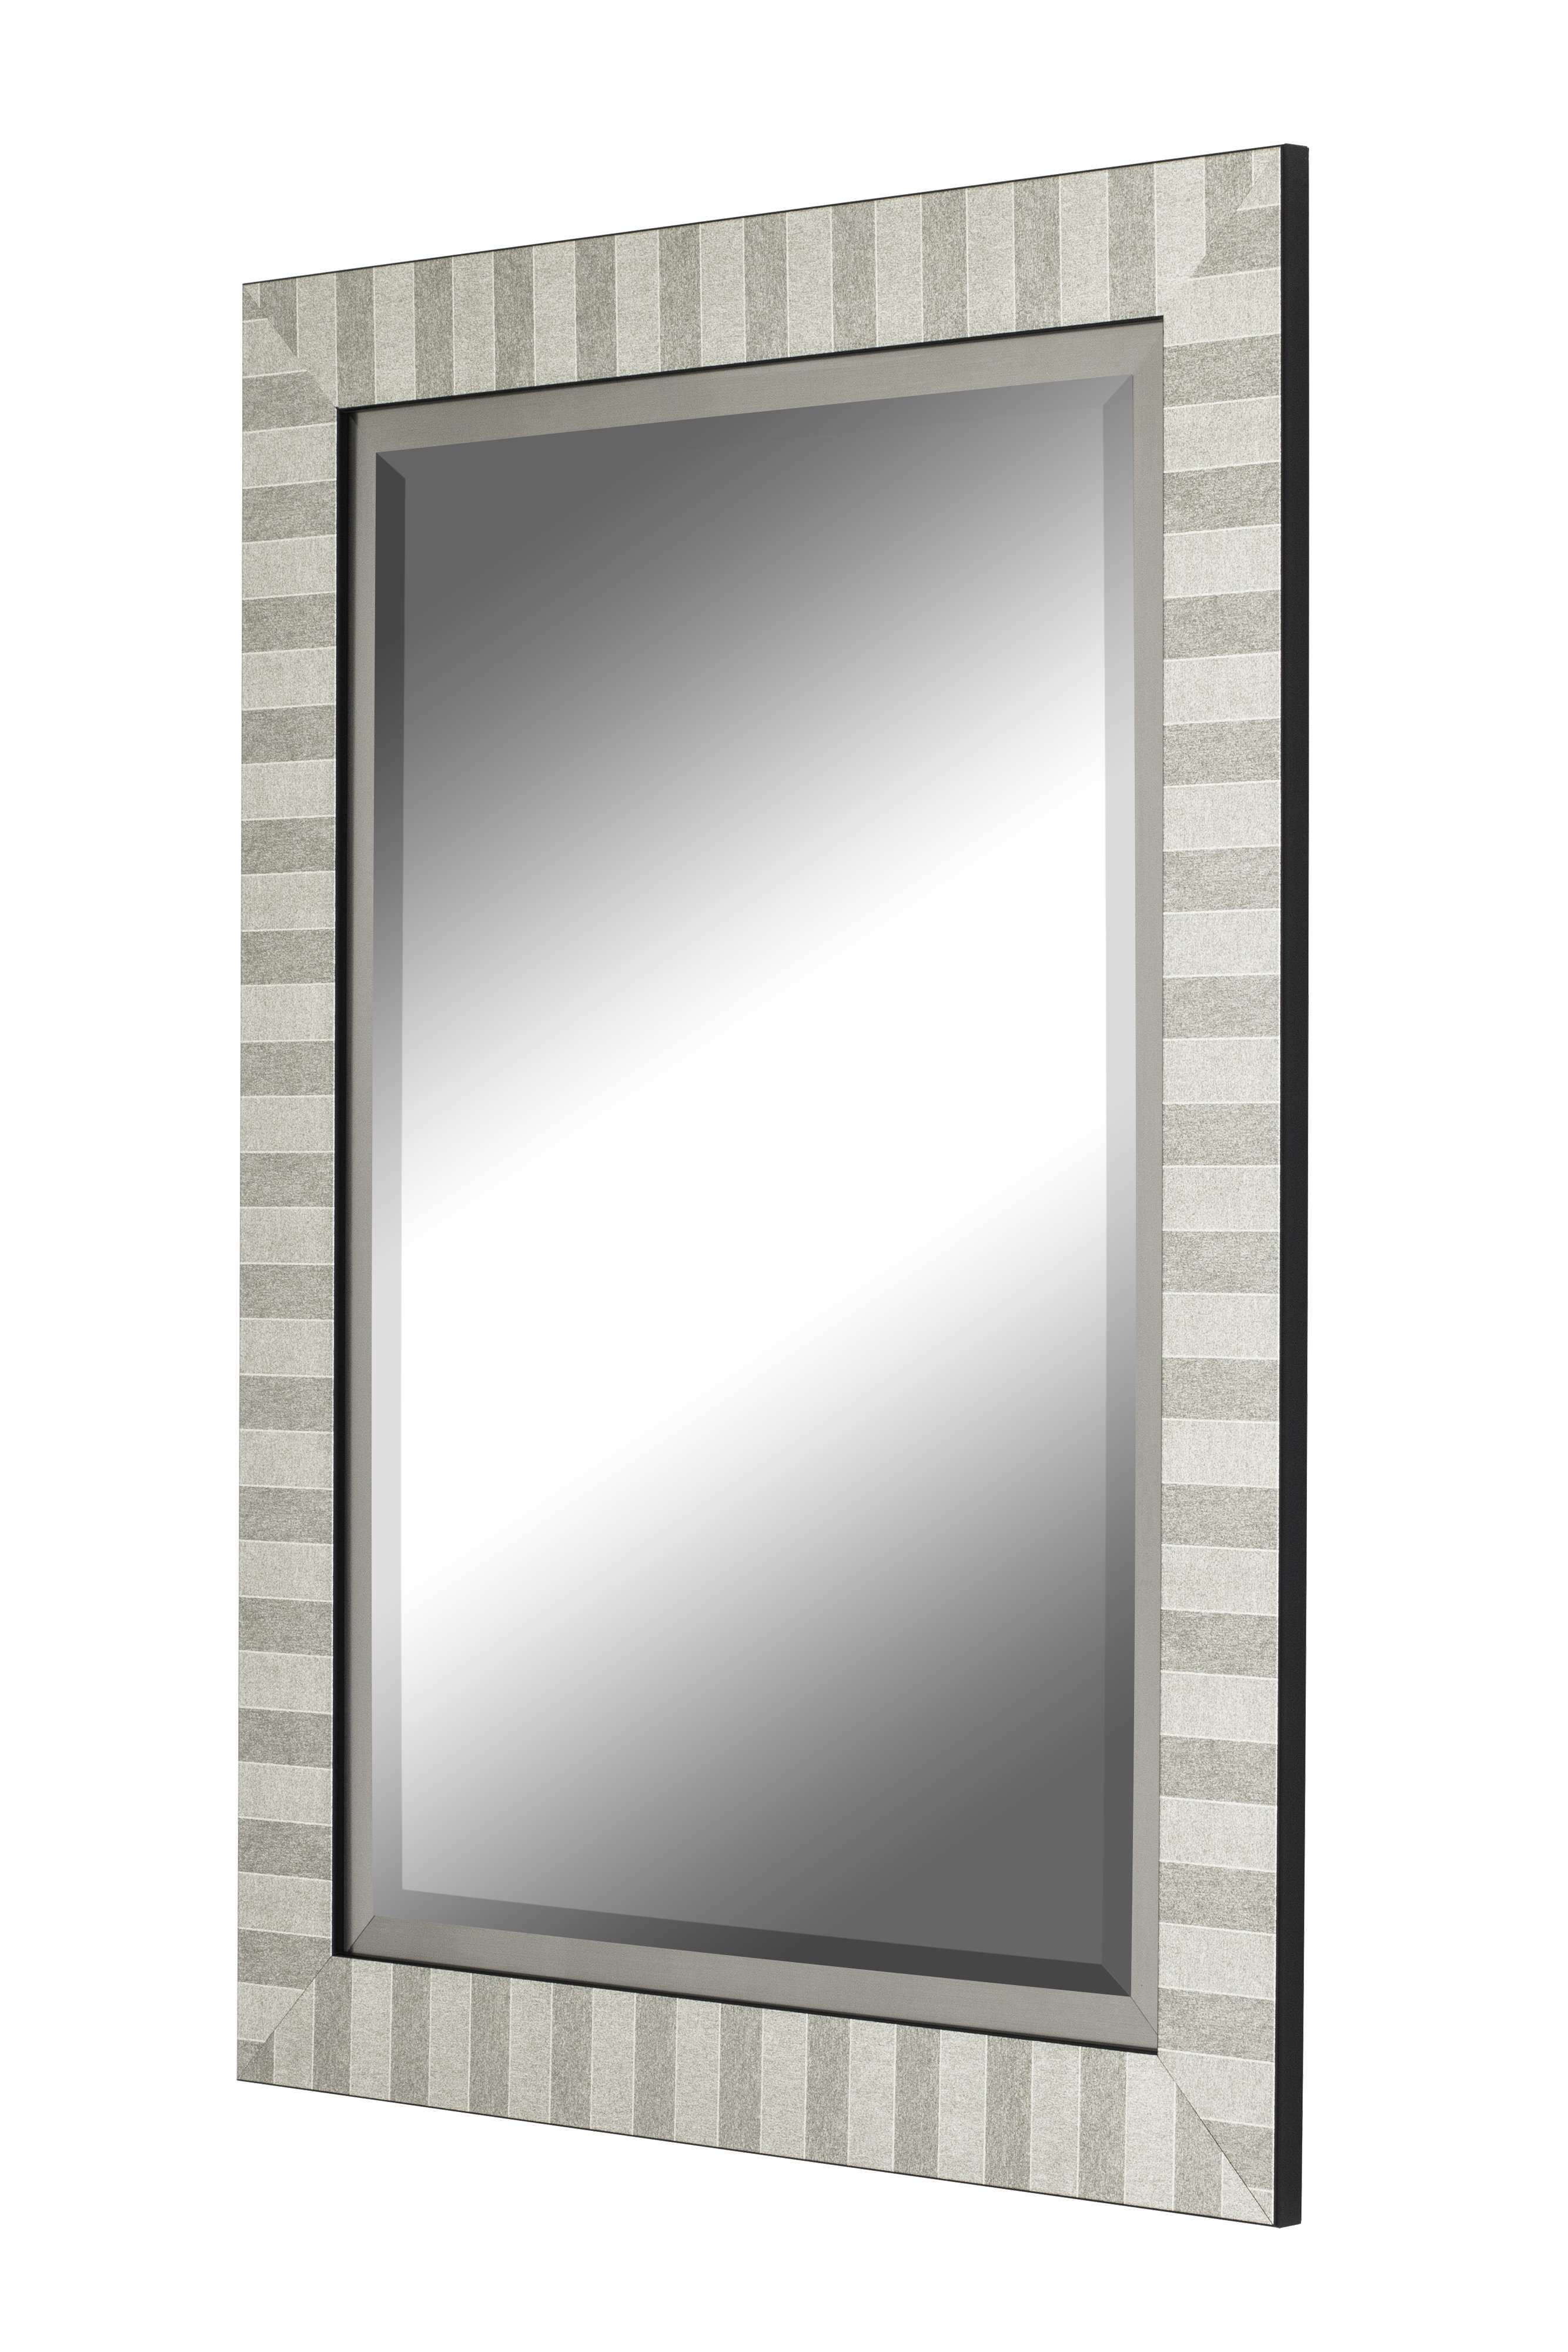 Pagano Urban Modern & Contemporary Wall Mirror Within Modern & Contemporary Beveled Overmantel Mirrors (View 14 of 20)